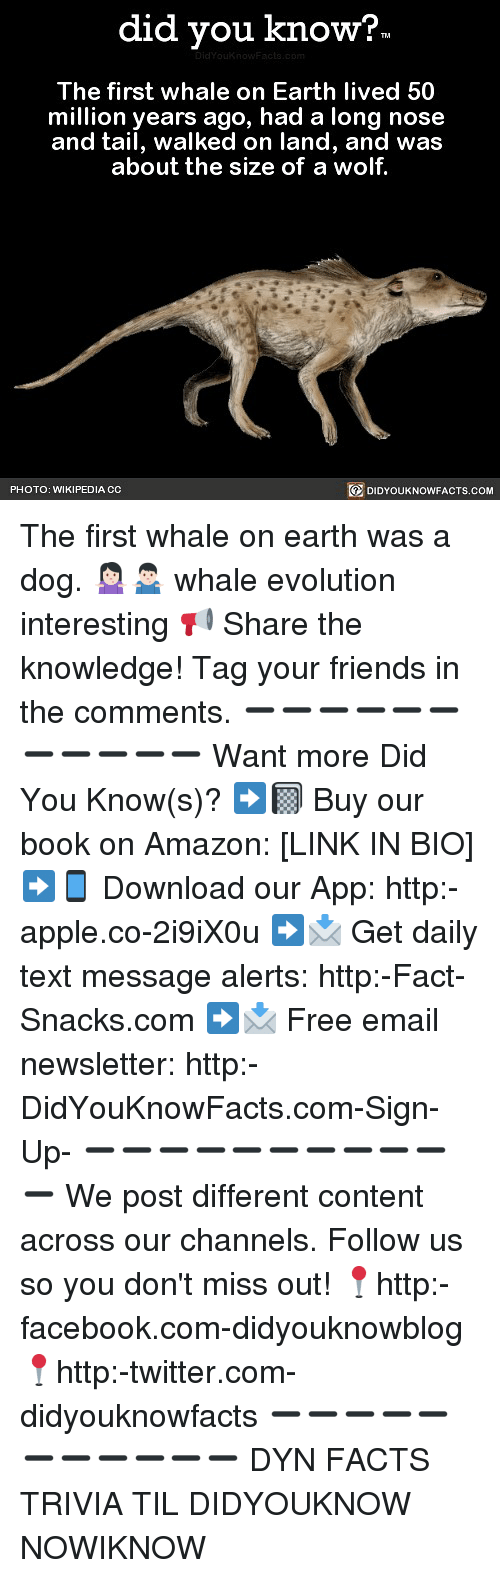 Amazon, Apple, and Facebook: did you know?  The first whale on Earth lived 50  million years ago, had a long nose  and tail, walked on land, and was  about the size of a wolf.  PHOTO: WIKIPEDIA CC  DIDYOUKNOWFACTS.COM The first whale on earth was a dog. 🤷🏻♀️🤷🏻♂️ whale evolution interesting 📢 Share the knowledge! Tag your friends in the comments. ➖➖➖➖➖➖➖➖➖➖➖ Want more Did You Know(s)? ➡📓 Buy our book on Amazon: [LINK IN BIO] ➡📱 Download our App: http:-apple.co-2i9iX0u ➡📩 Get daily text message alerts: http:-Fact-Snacks.com ➡📩 Free email newsletter: http:-DidYouKnowFacts.com-Sign-Up- ➖➖➖➖➖➖➖➖➖➖➖ We post different content across our channels. Follow us so you don't miss out! 📍http:-facebook.com-didyouknowblog 📍http:-twitter.com-didyouknowfacts ➖➖➖➖➖➖➖➖➖➖➖ DYN FACTS TRIVIA TIL DIDYOUKNOW NOWIKNOW